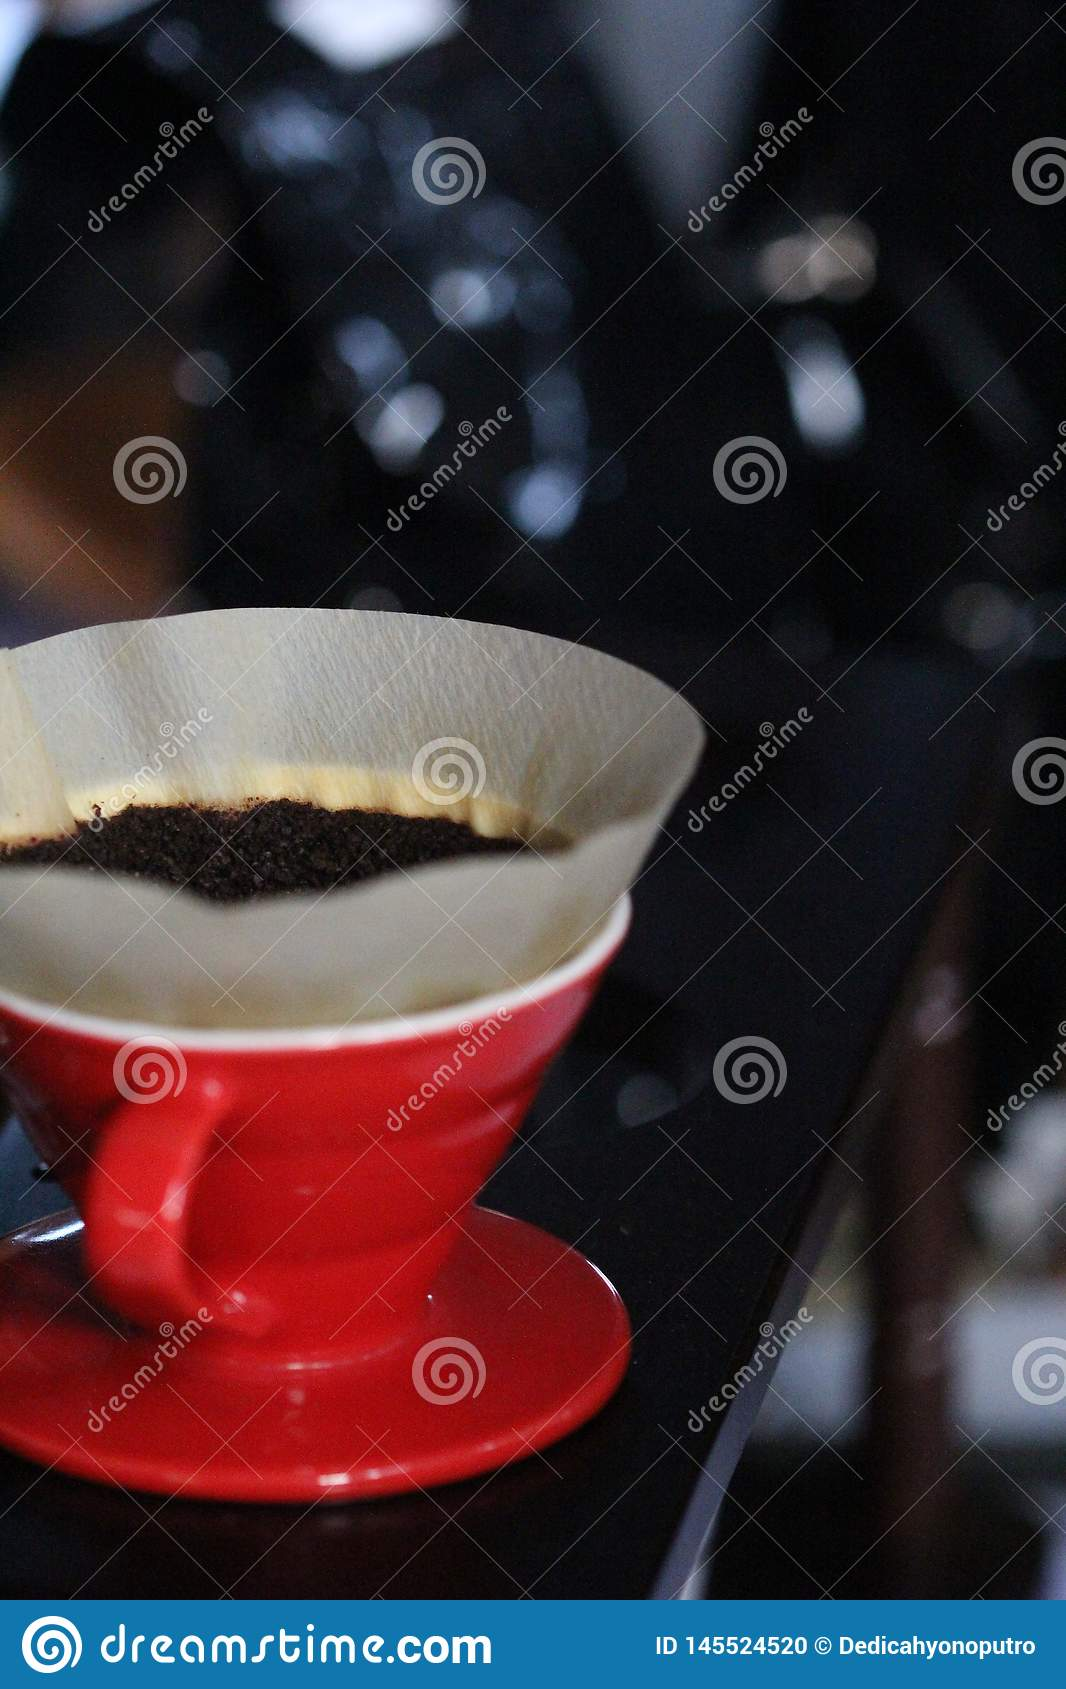 Coffee powder that will be brewed with a red cup